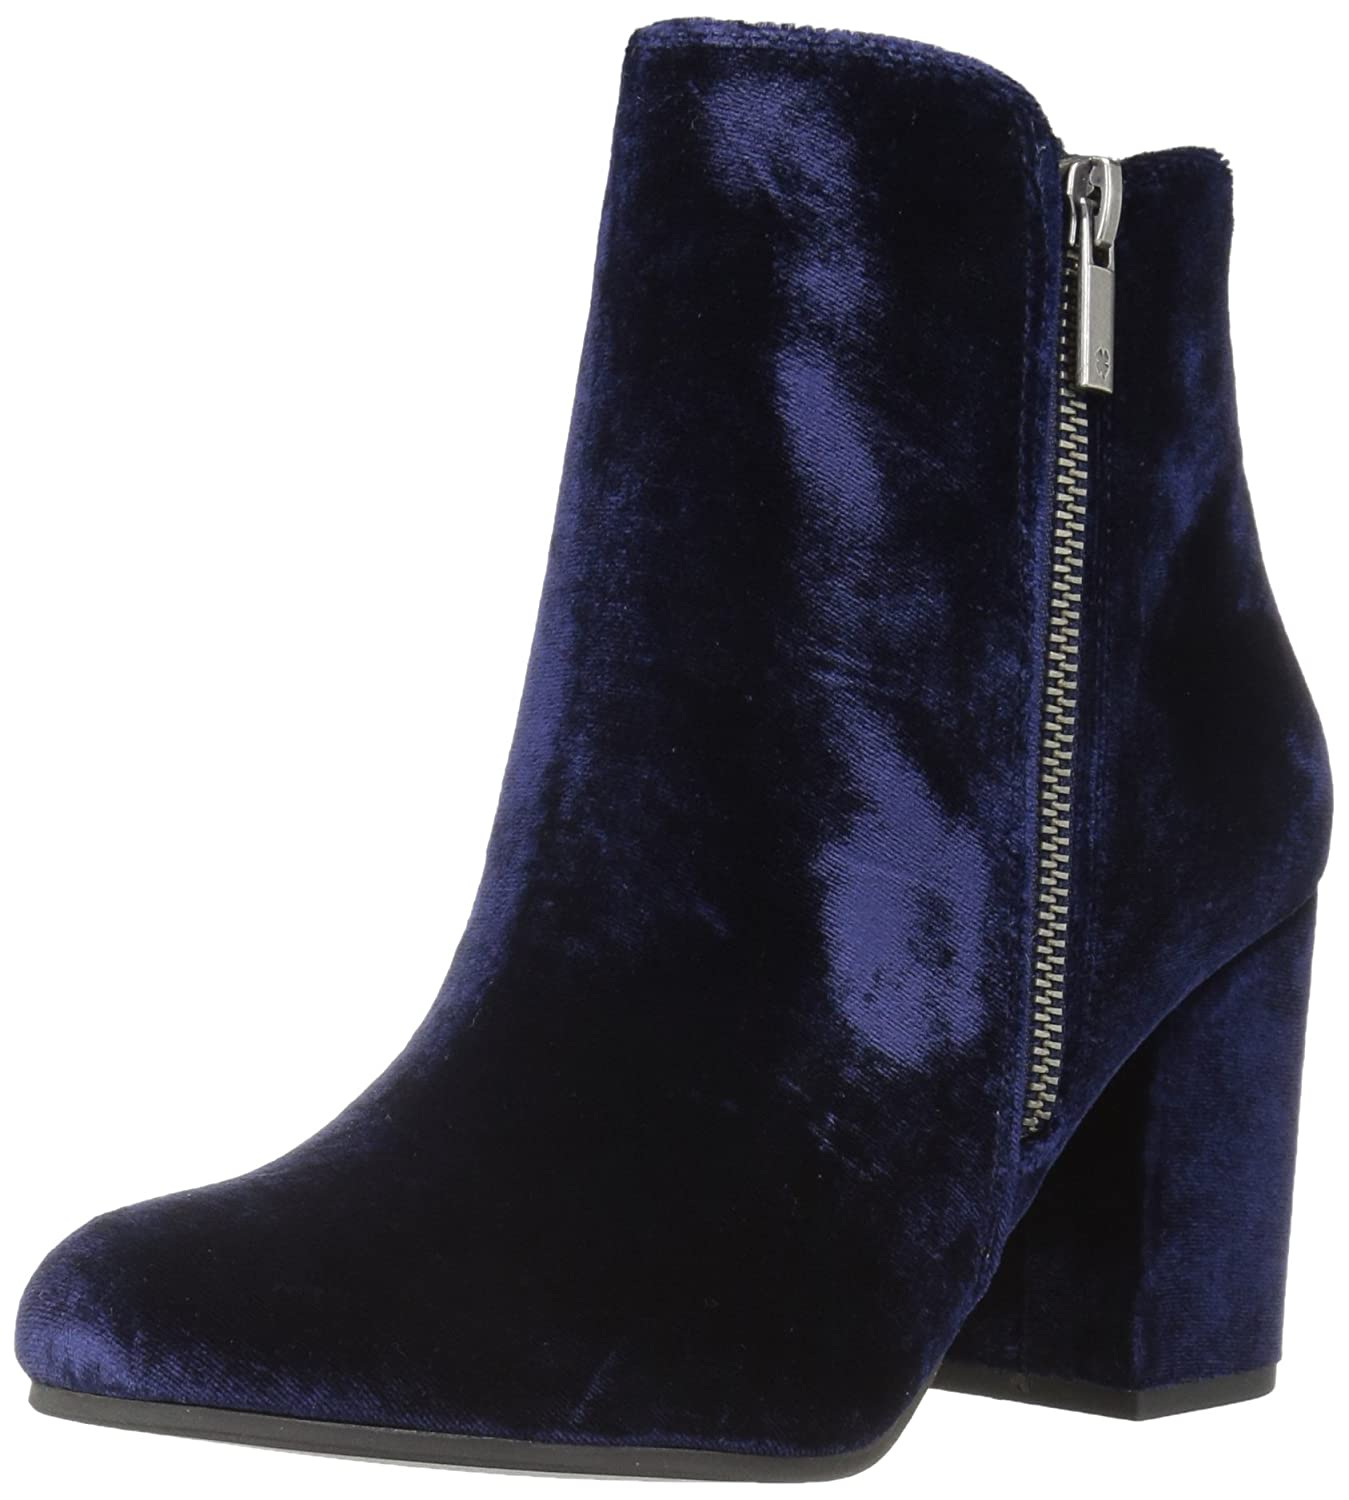 Lucky Brand Women's Shaynah Ankle Boot B01N9JXXM8 5.5 M US|Navy